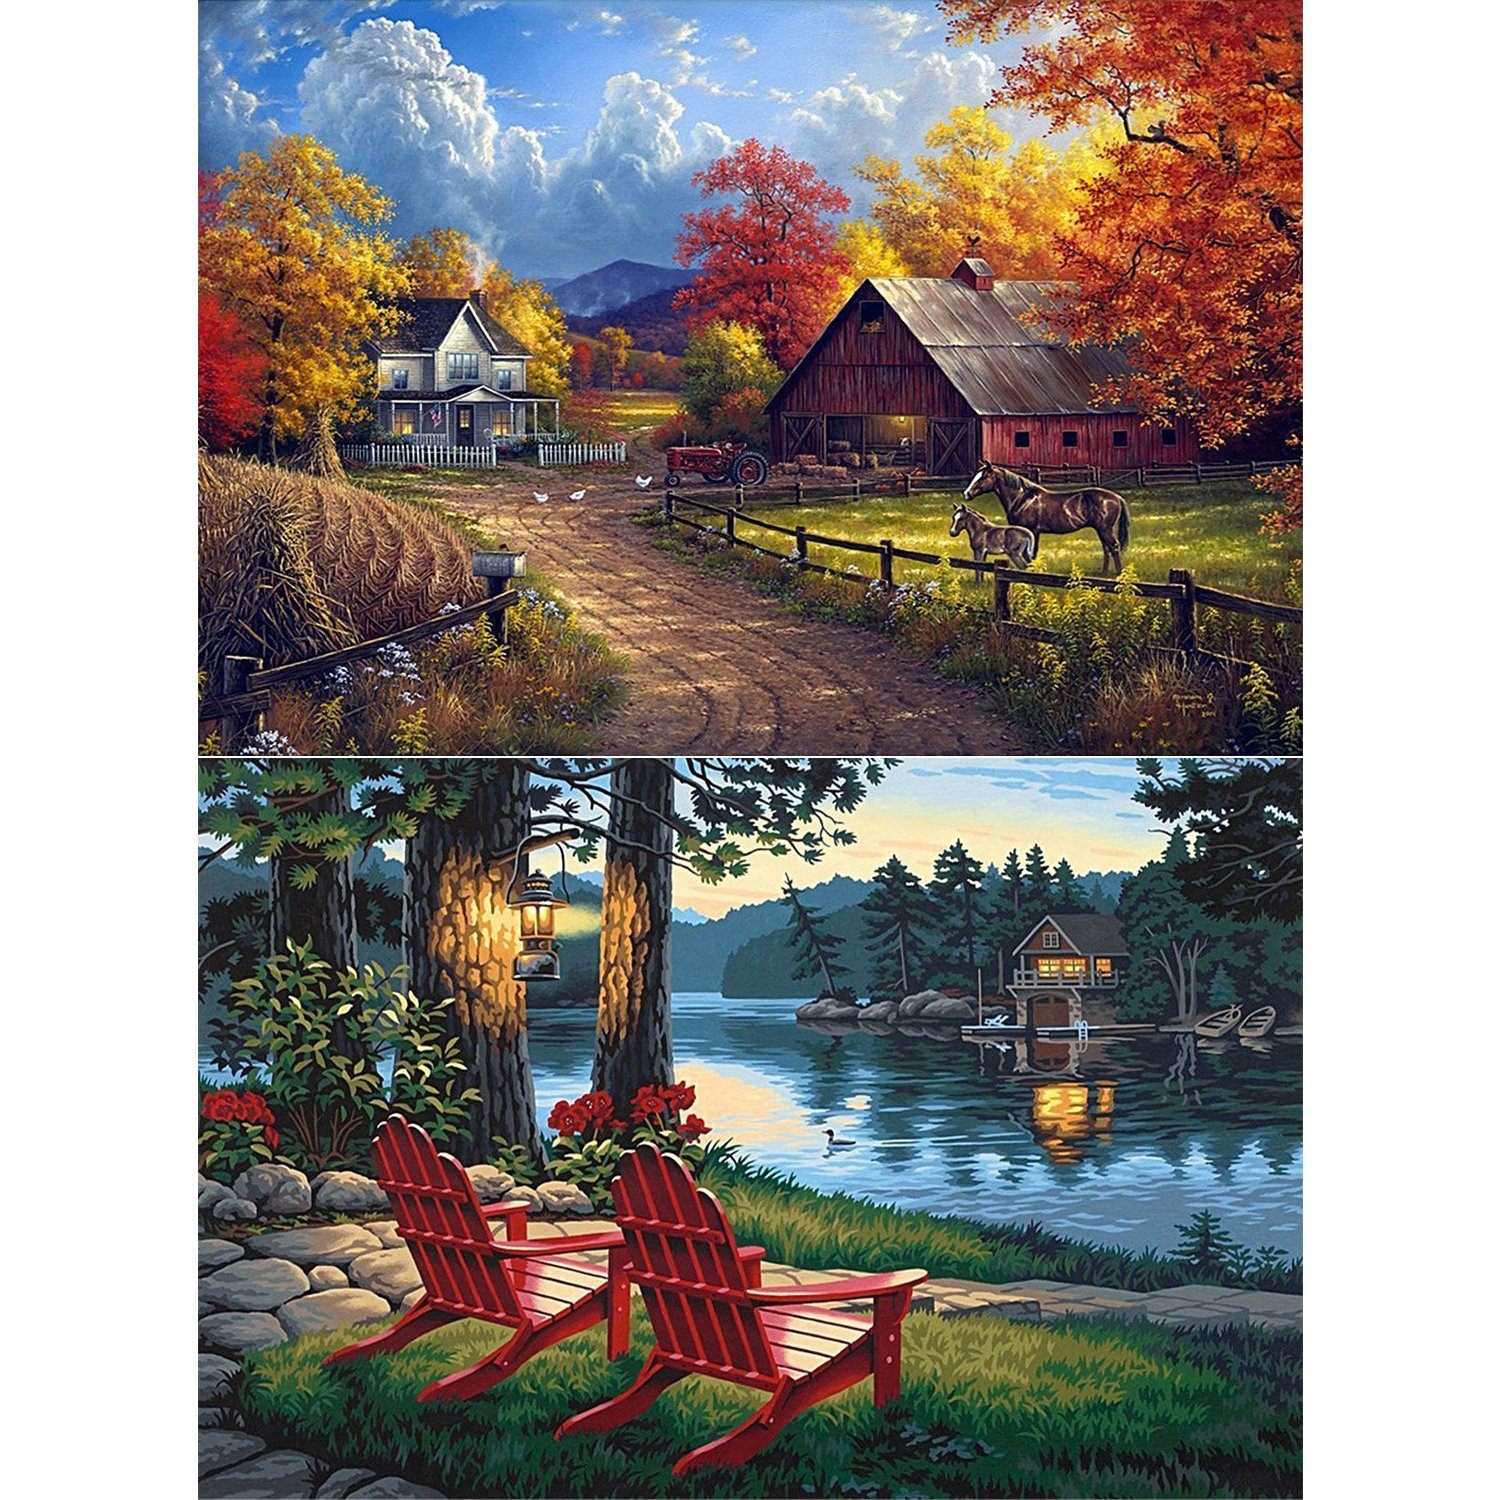 2 Packs 5D DIY Diamond Painting Set Full Drill Arts Crafts Wall Stickers For Living Room Village Farm and Village River(12X16 inches/30X40cm) Cool Bank